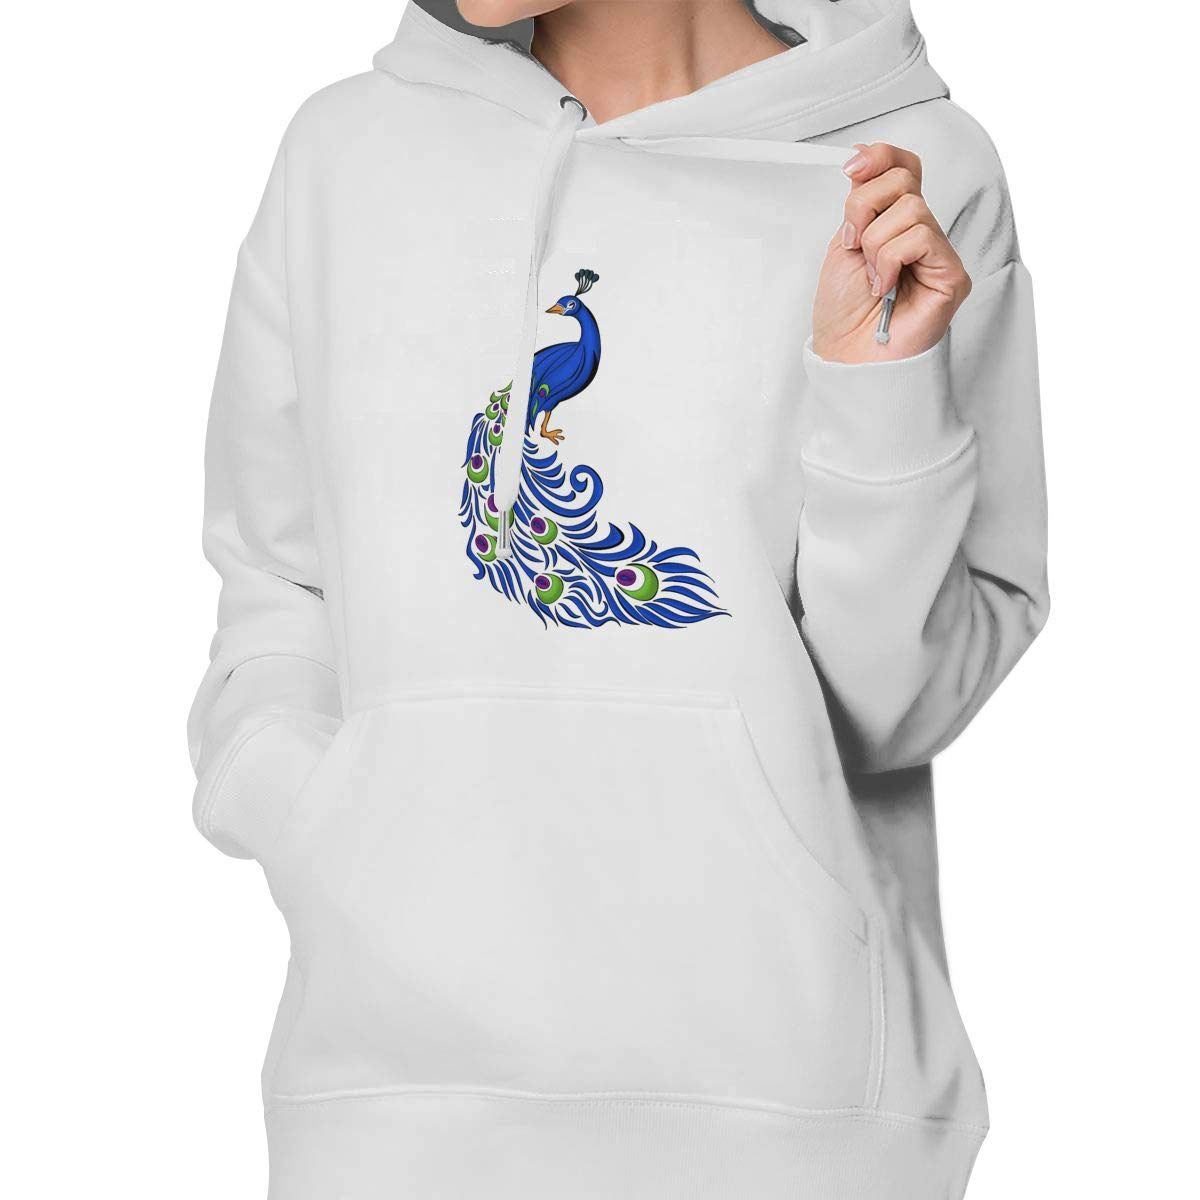 Amazon.com: Binfldg Peacock Clipart Fashion Women\'s Pullover.